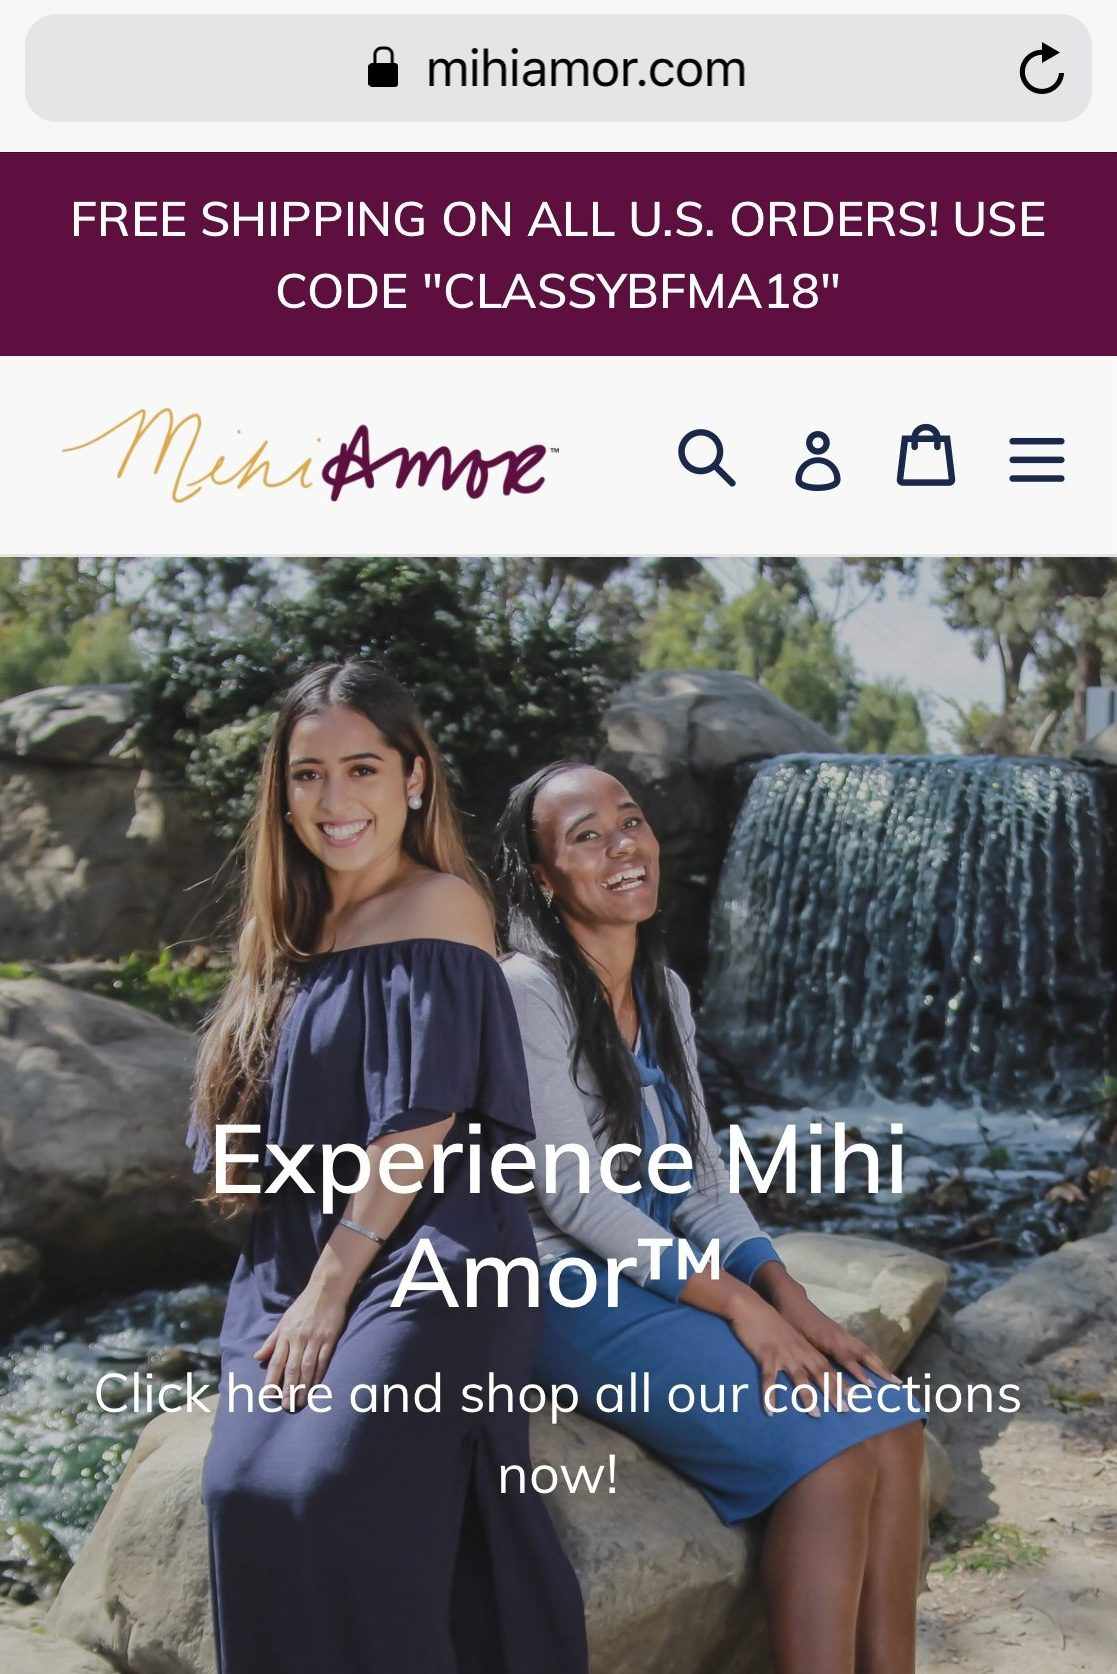 Mihi Amor website page